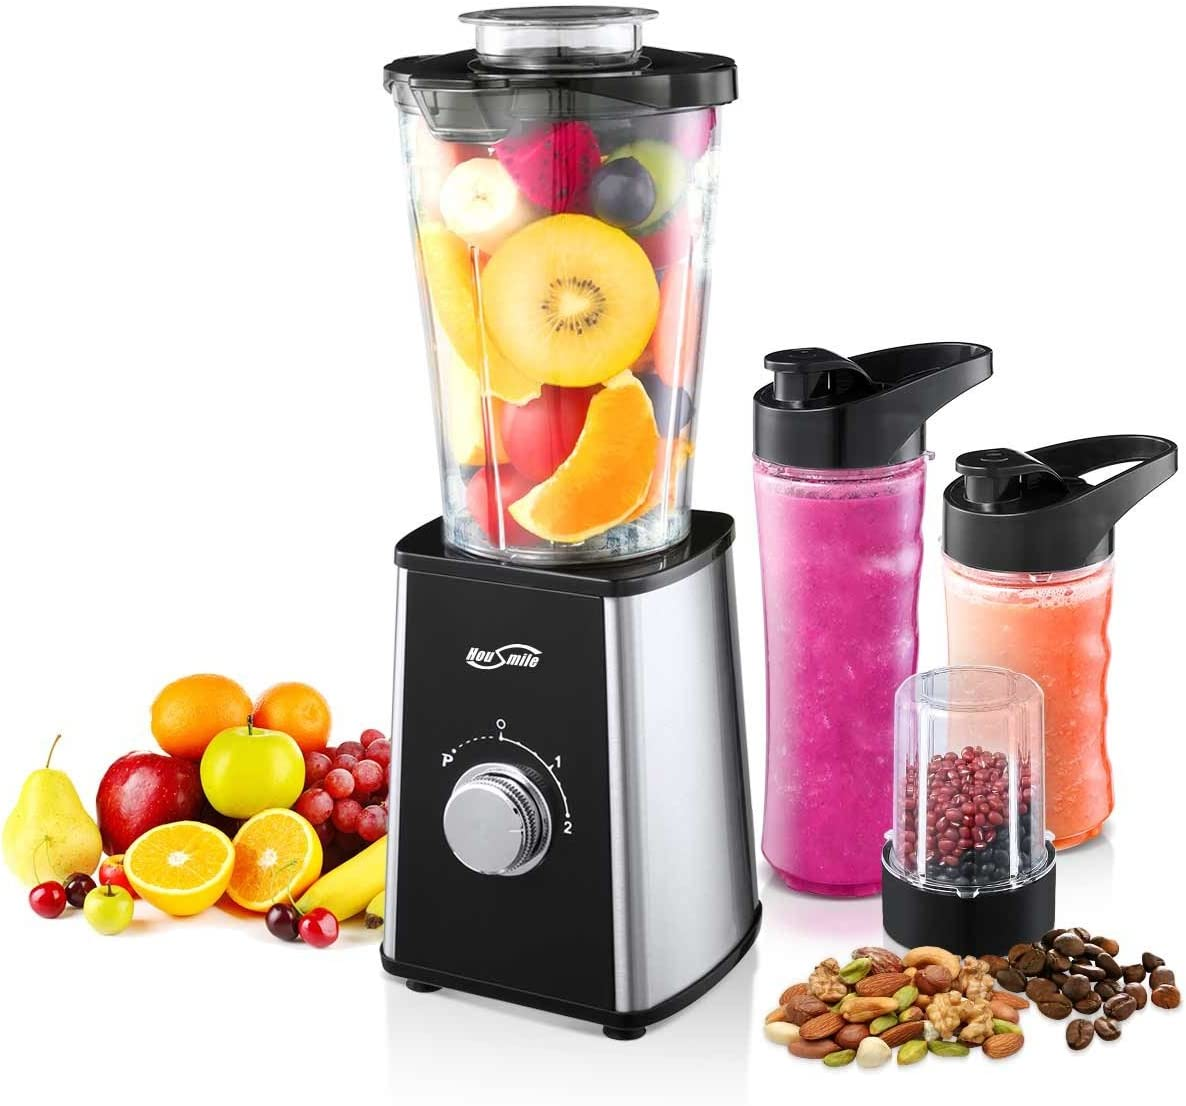 Housmile Smoothie Blender, 7-Piece Countertop with 300 Watt Base, High-Speed for Shakes and Smoothies Ice, Ice, White